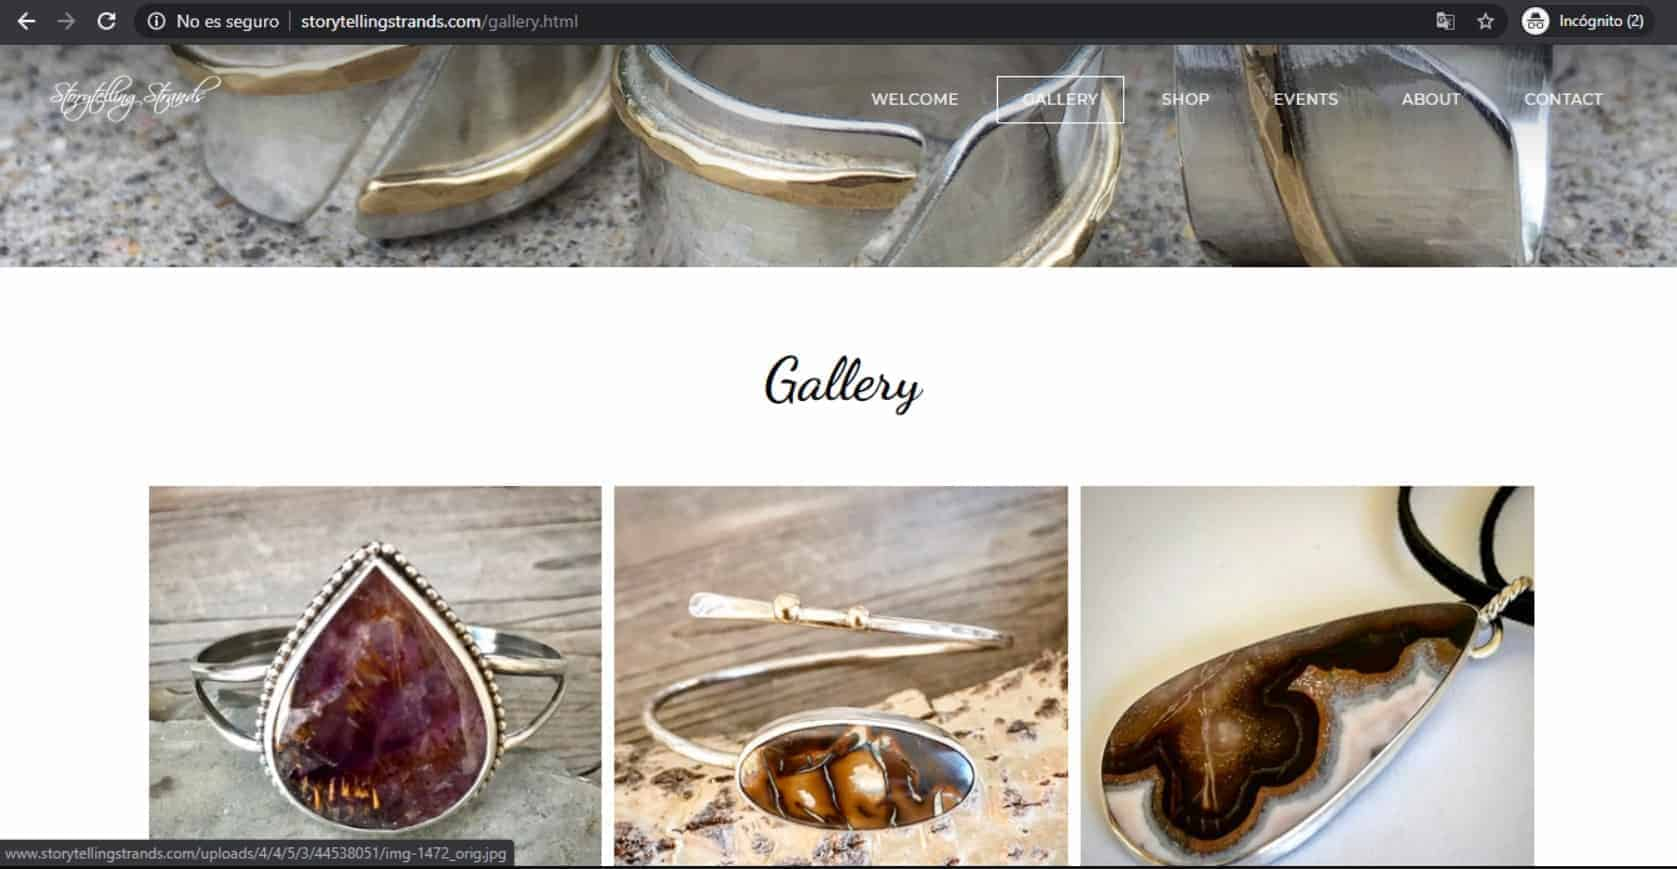 Storytelling Strands Weebly template Gallery